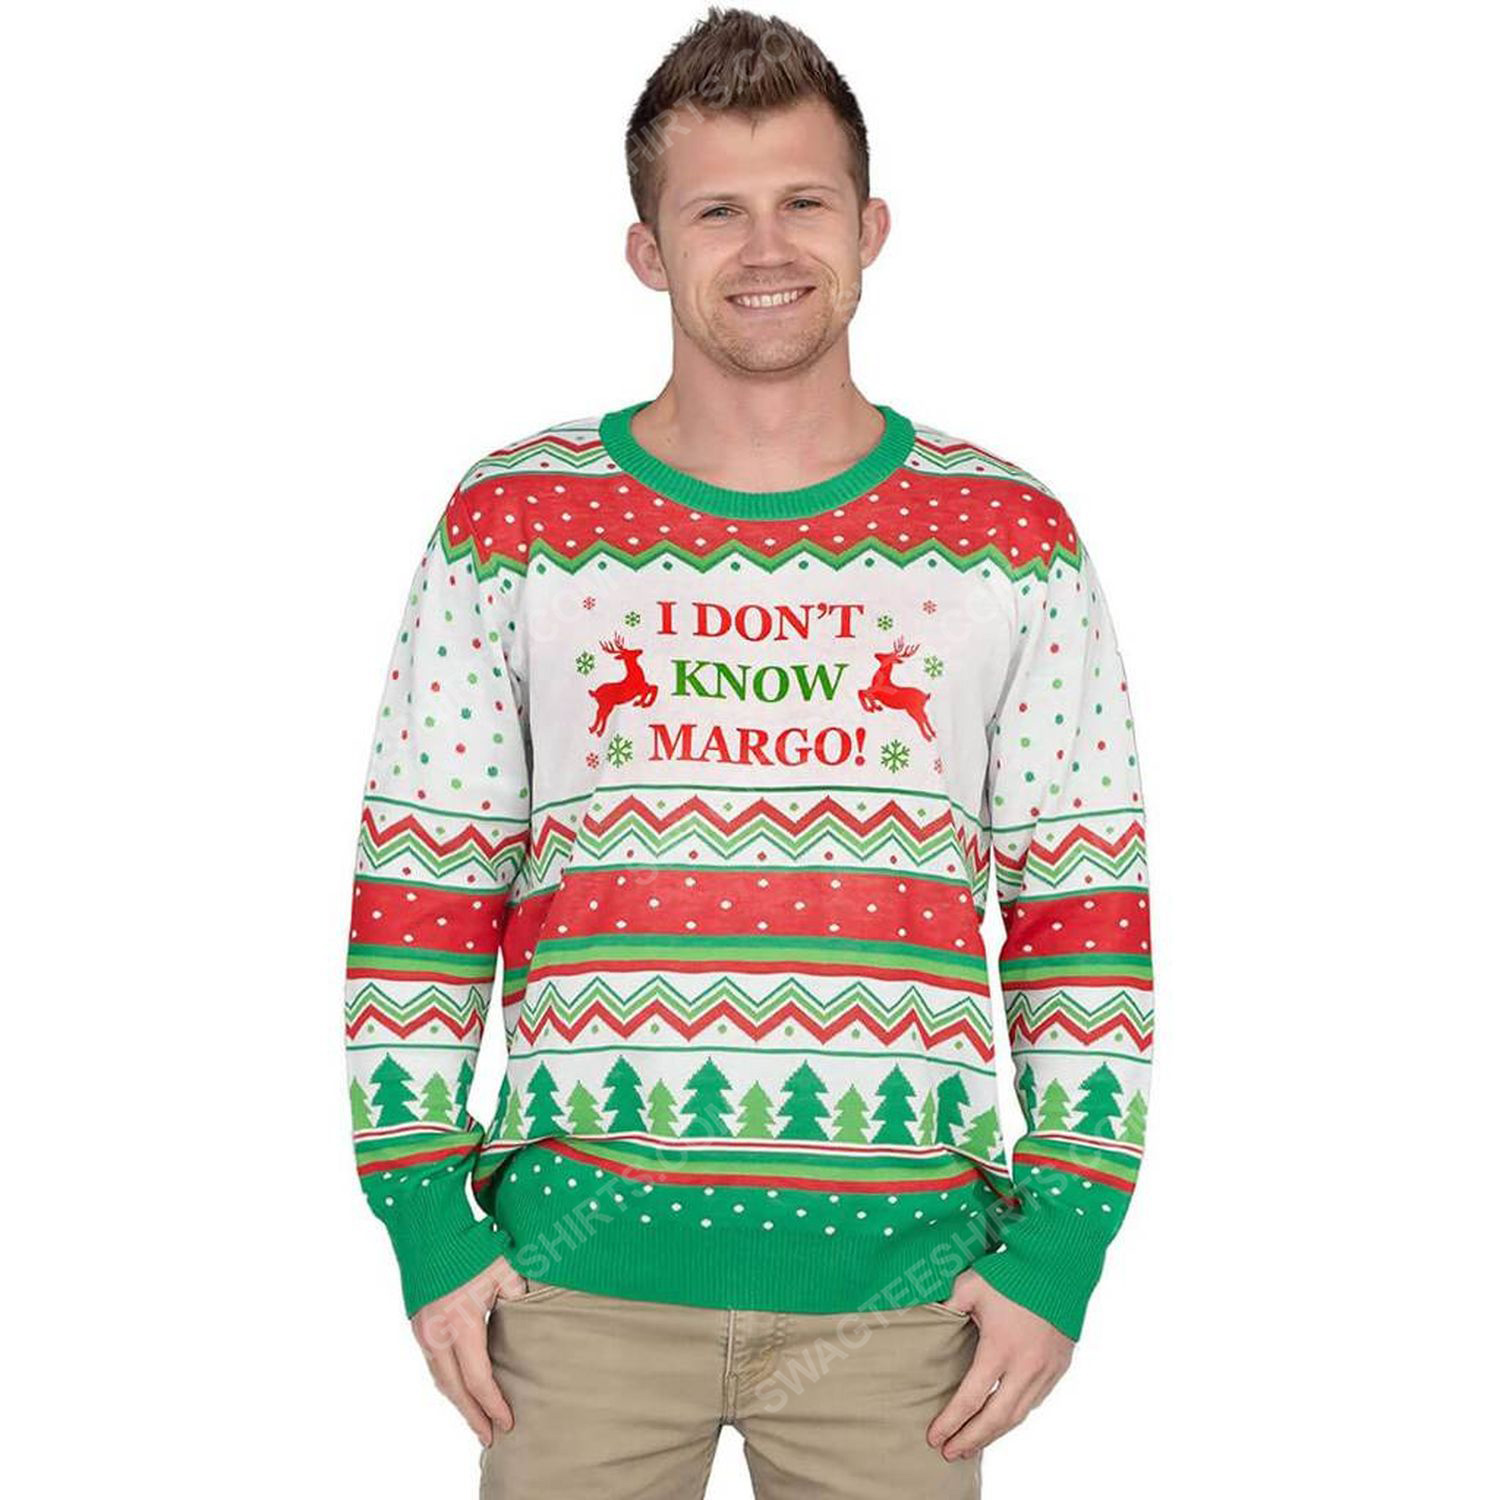 I don't know margo full print ugly christmas sweater 3